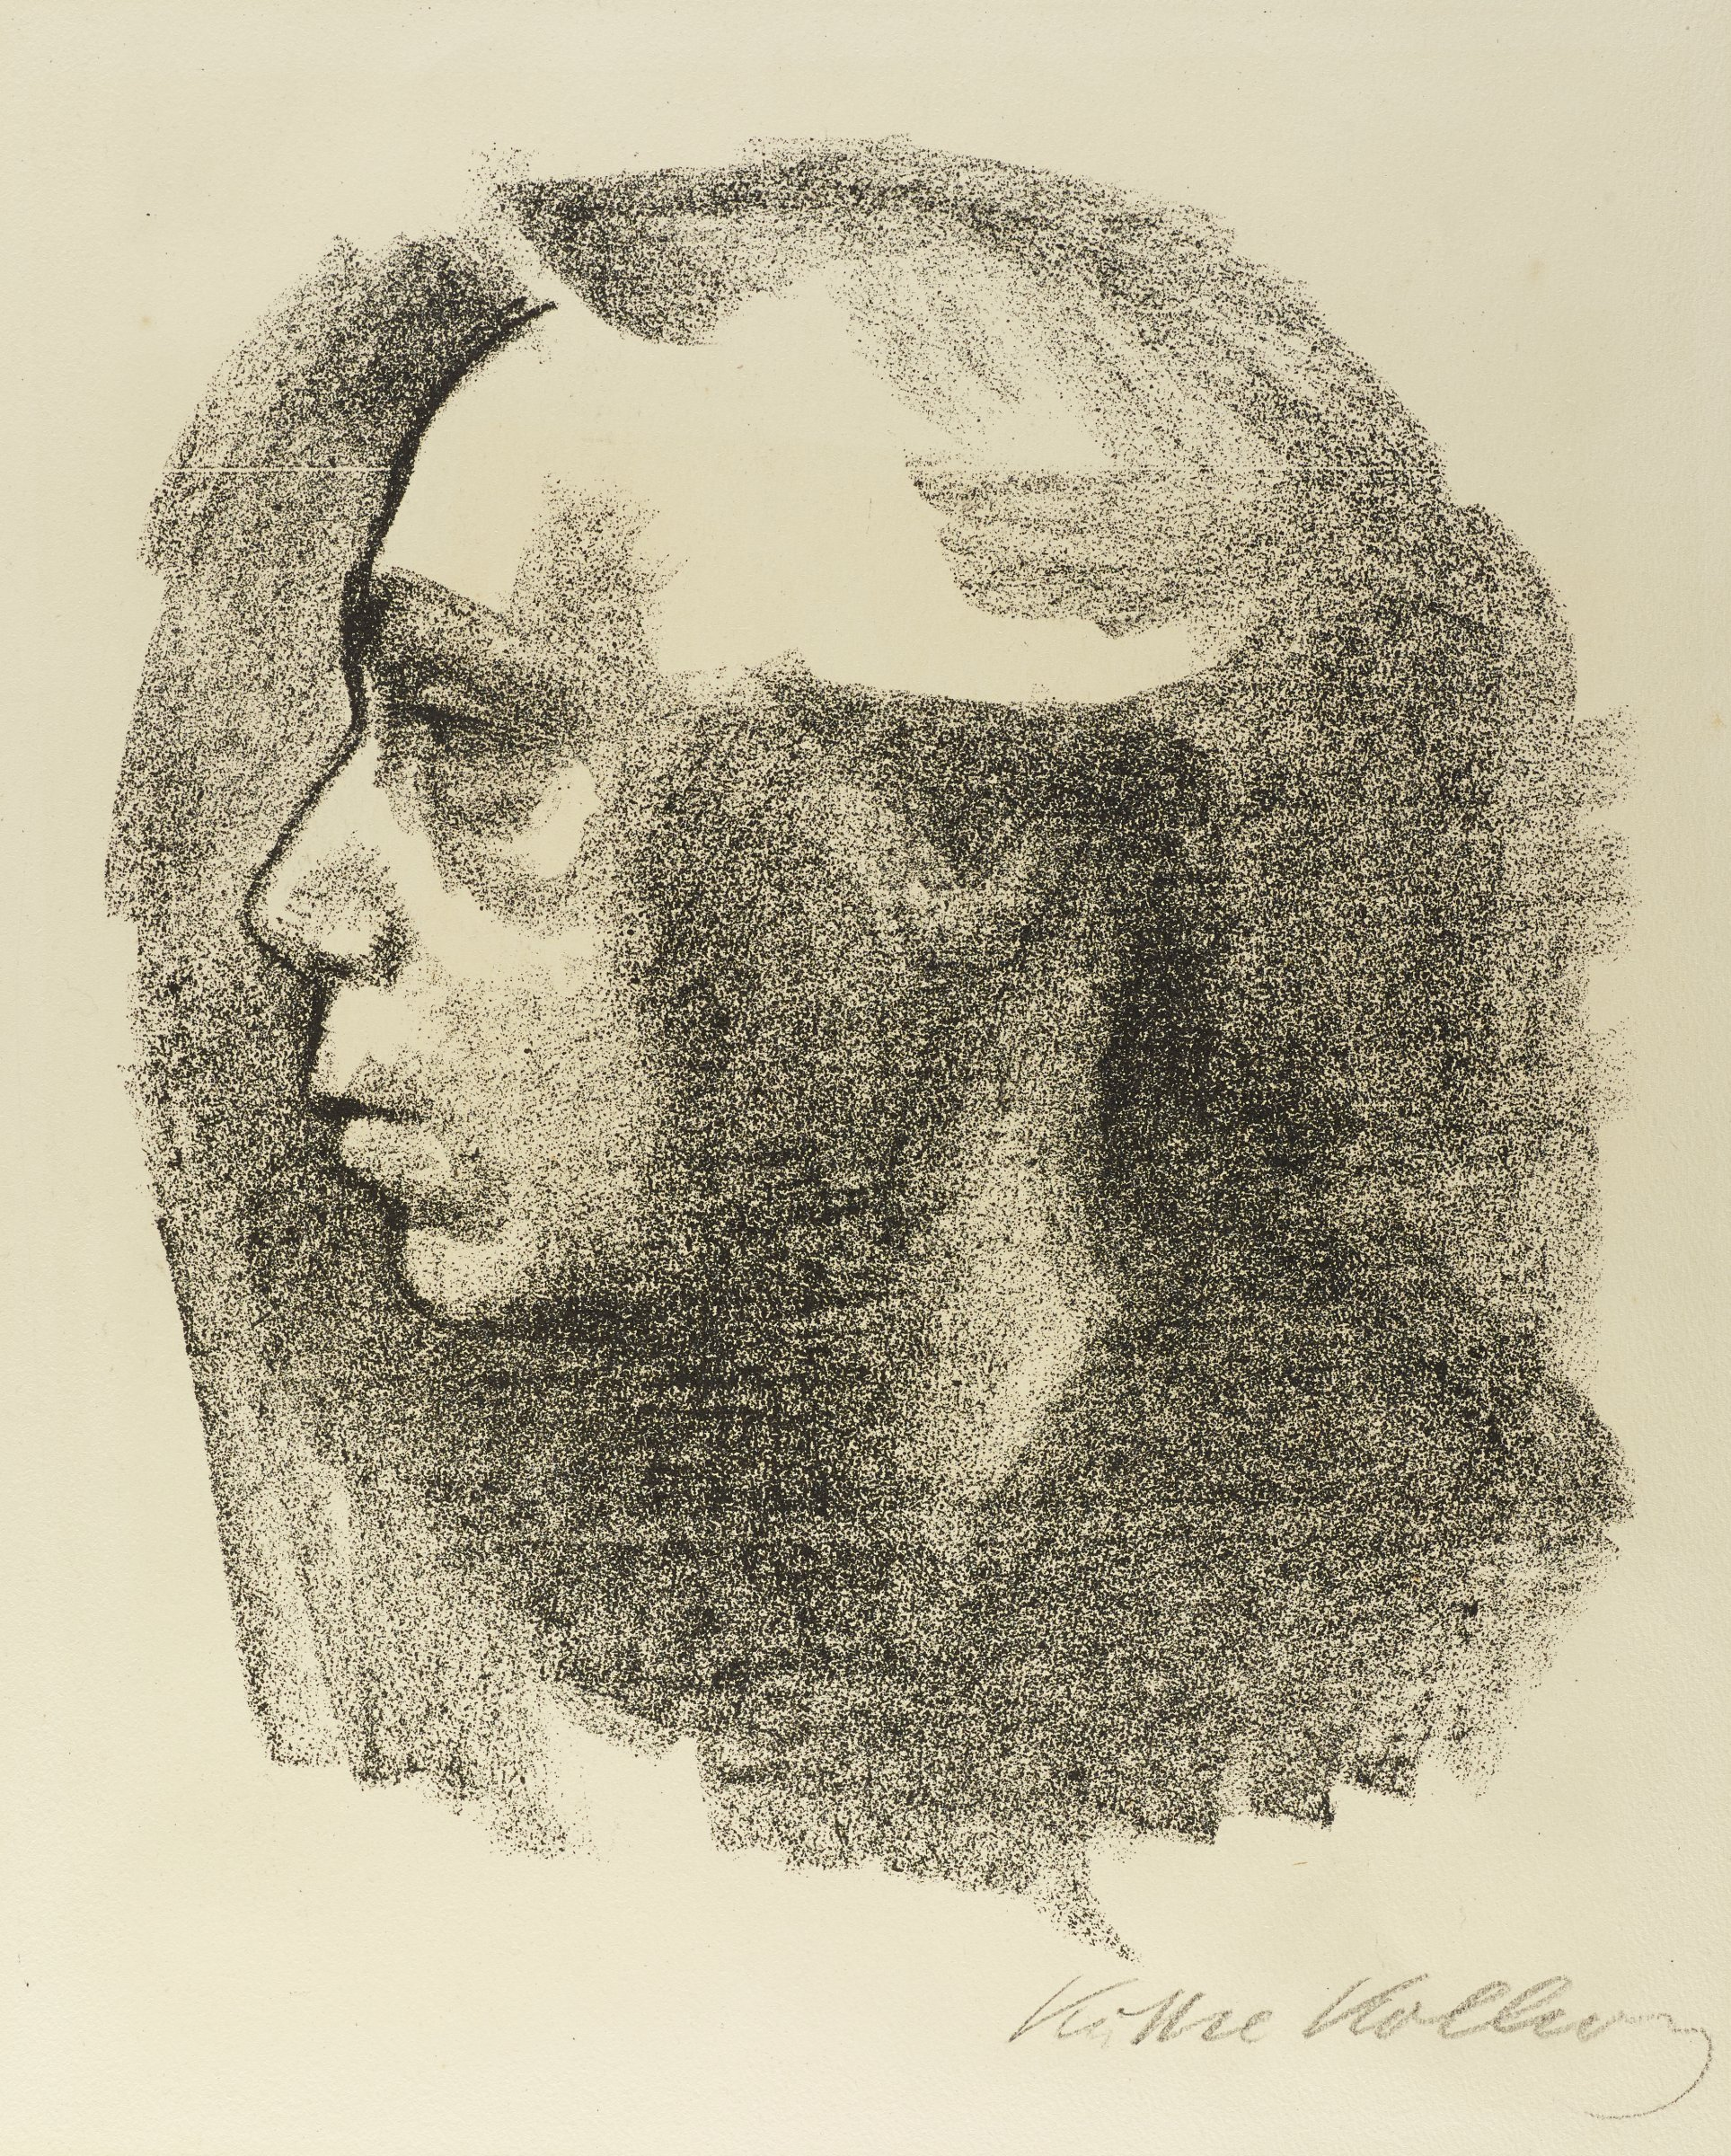 A self-portrait of the artist is depicted. She is seen in profile with a somber expression. She is framed by a textured black background.